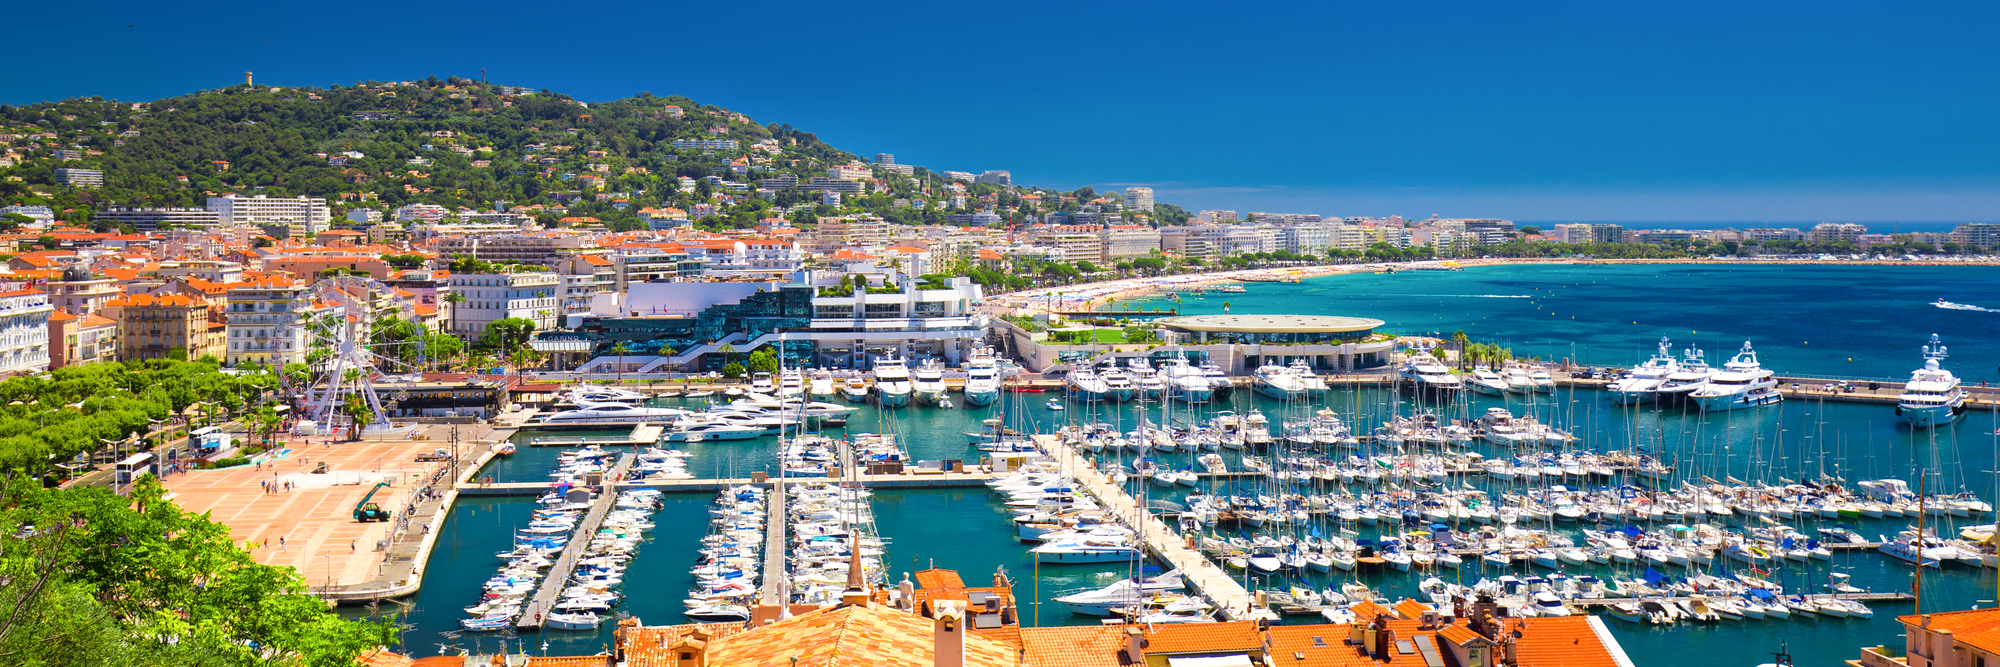 TFWA and Cannes 2021: <br> Your Questions Answered <br> Aude Bourdier, VP Marketing, Interviewed